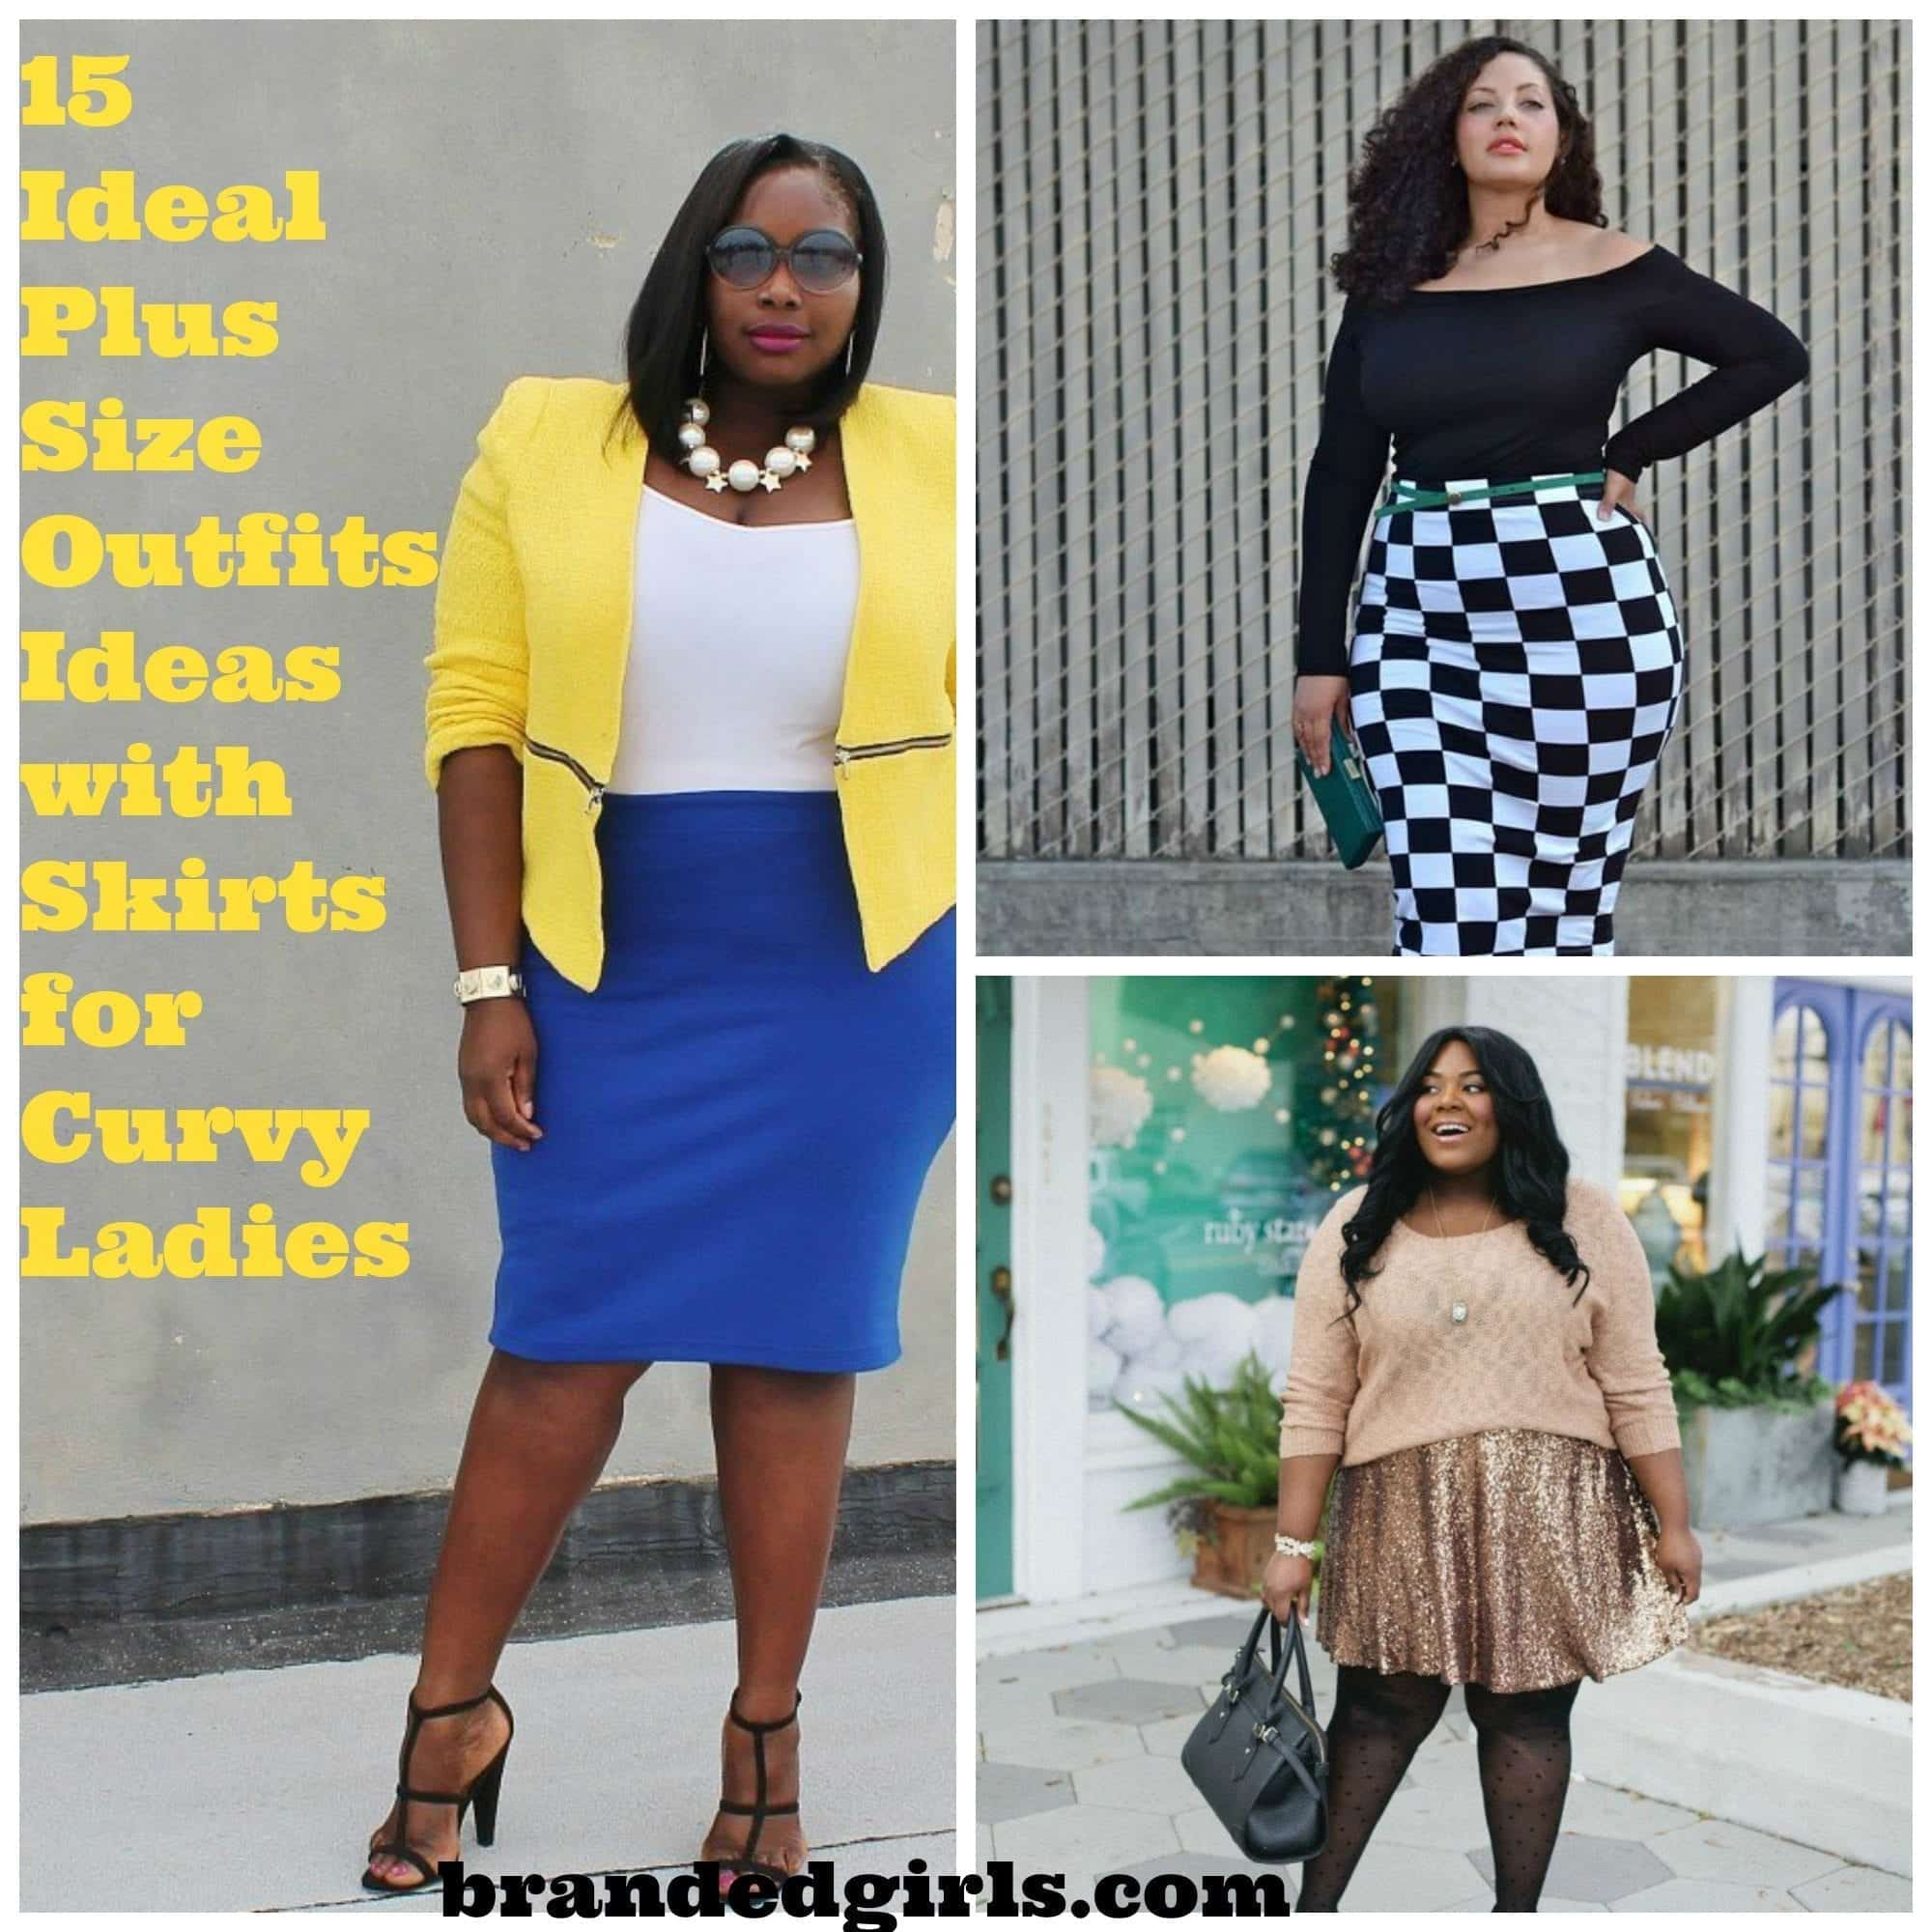 plus-size-skirts 15 Ideal Plus Size Outfits Ideas with Skirts for Curvy Ladies